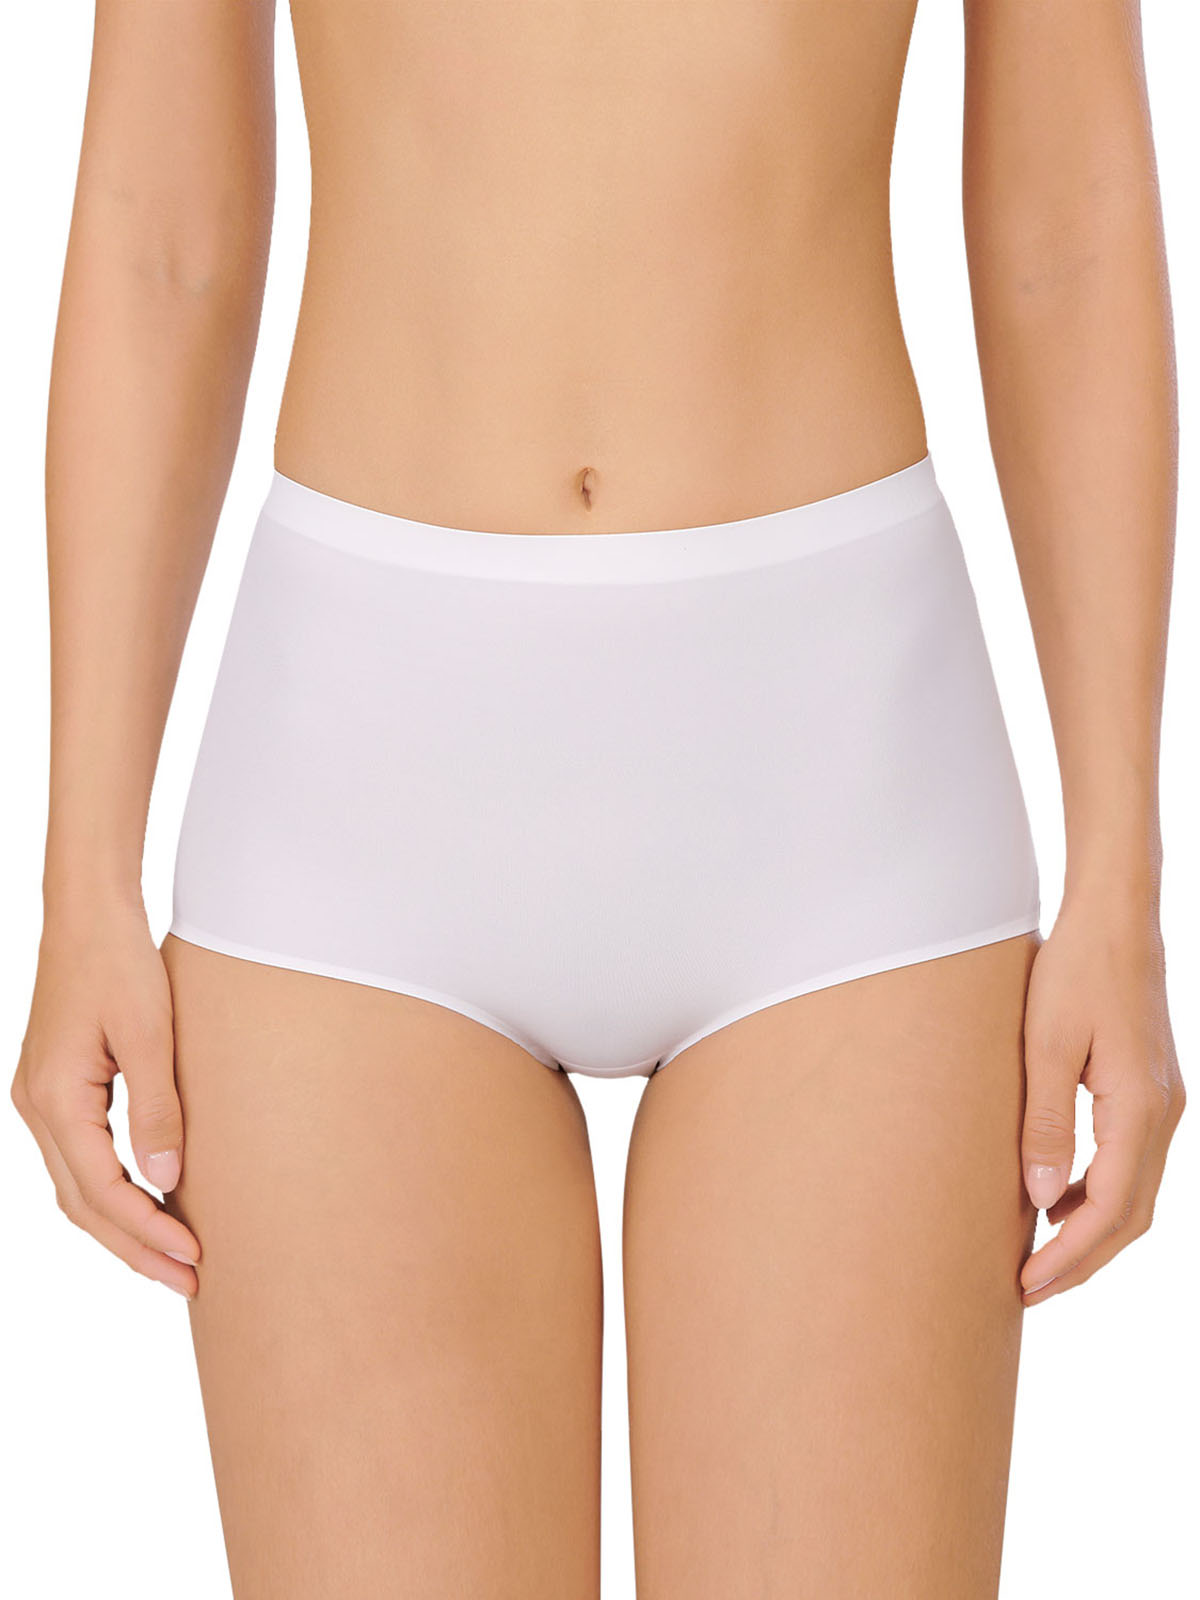 Naturana Women's Pack of 2 High Waist Panties 804744